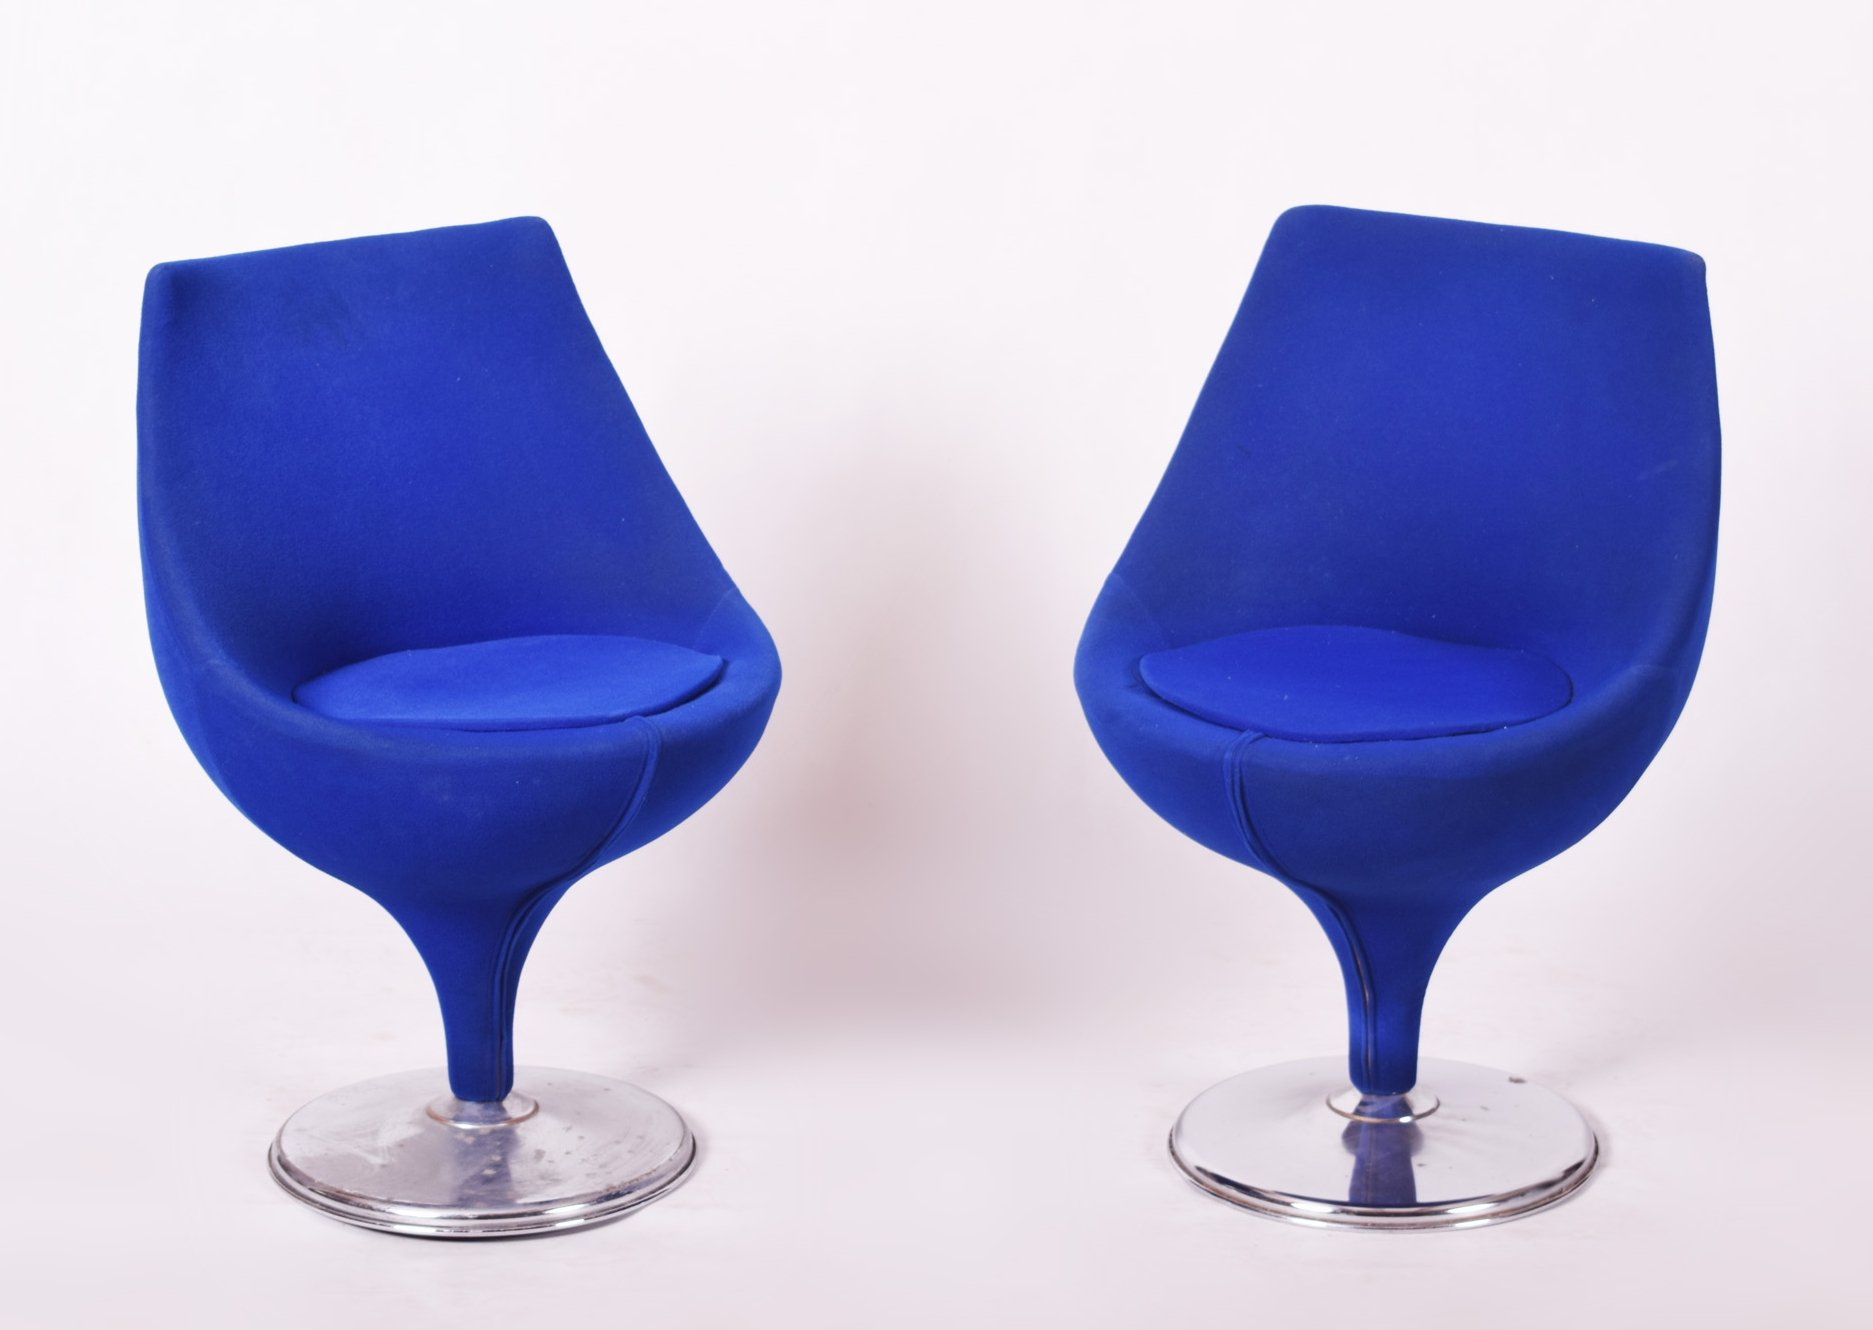 Magnificent Pair Of Italian Blue Midcentury Swivel Chairs 1960S Unemploymentrelief Wooden Chair Designs For Living Room Unemploymentrelieforg